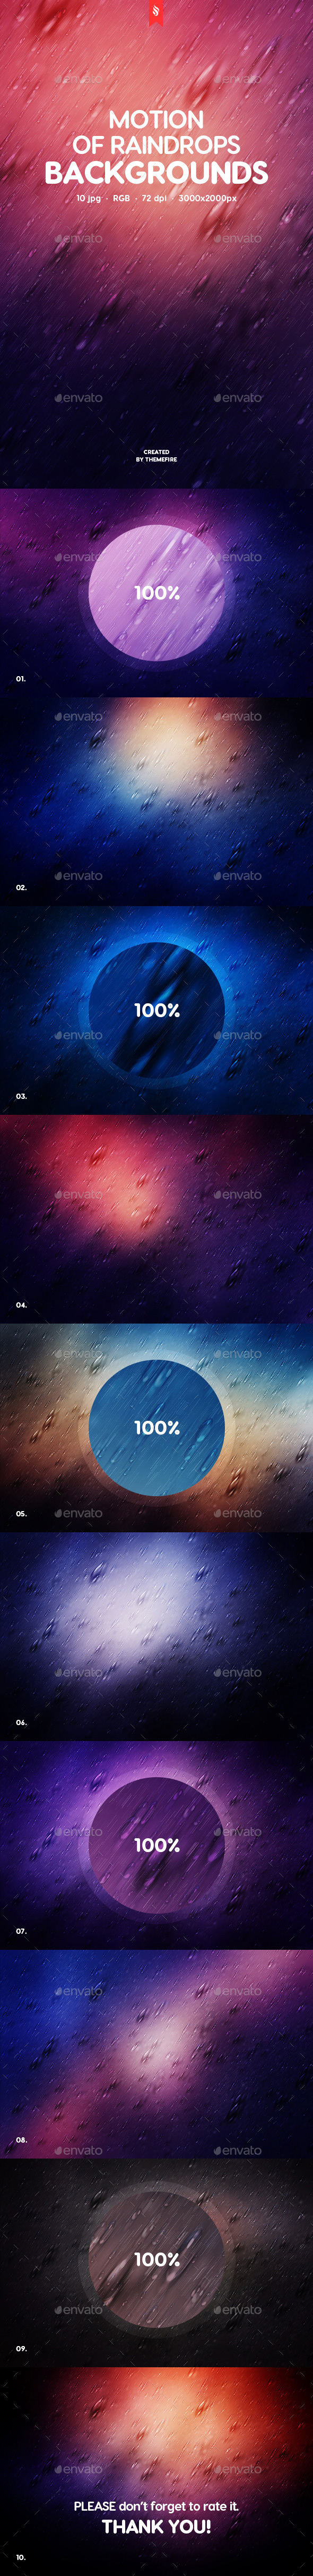 Motion of Raindrops Backgrounds - Backgrounds Graphics